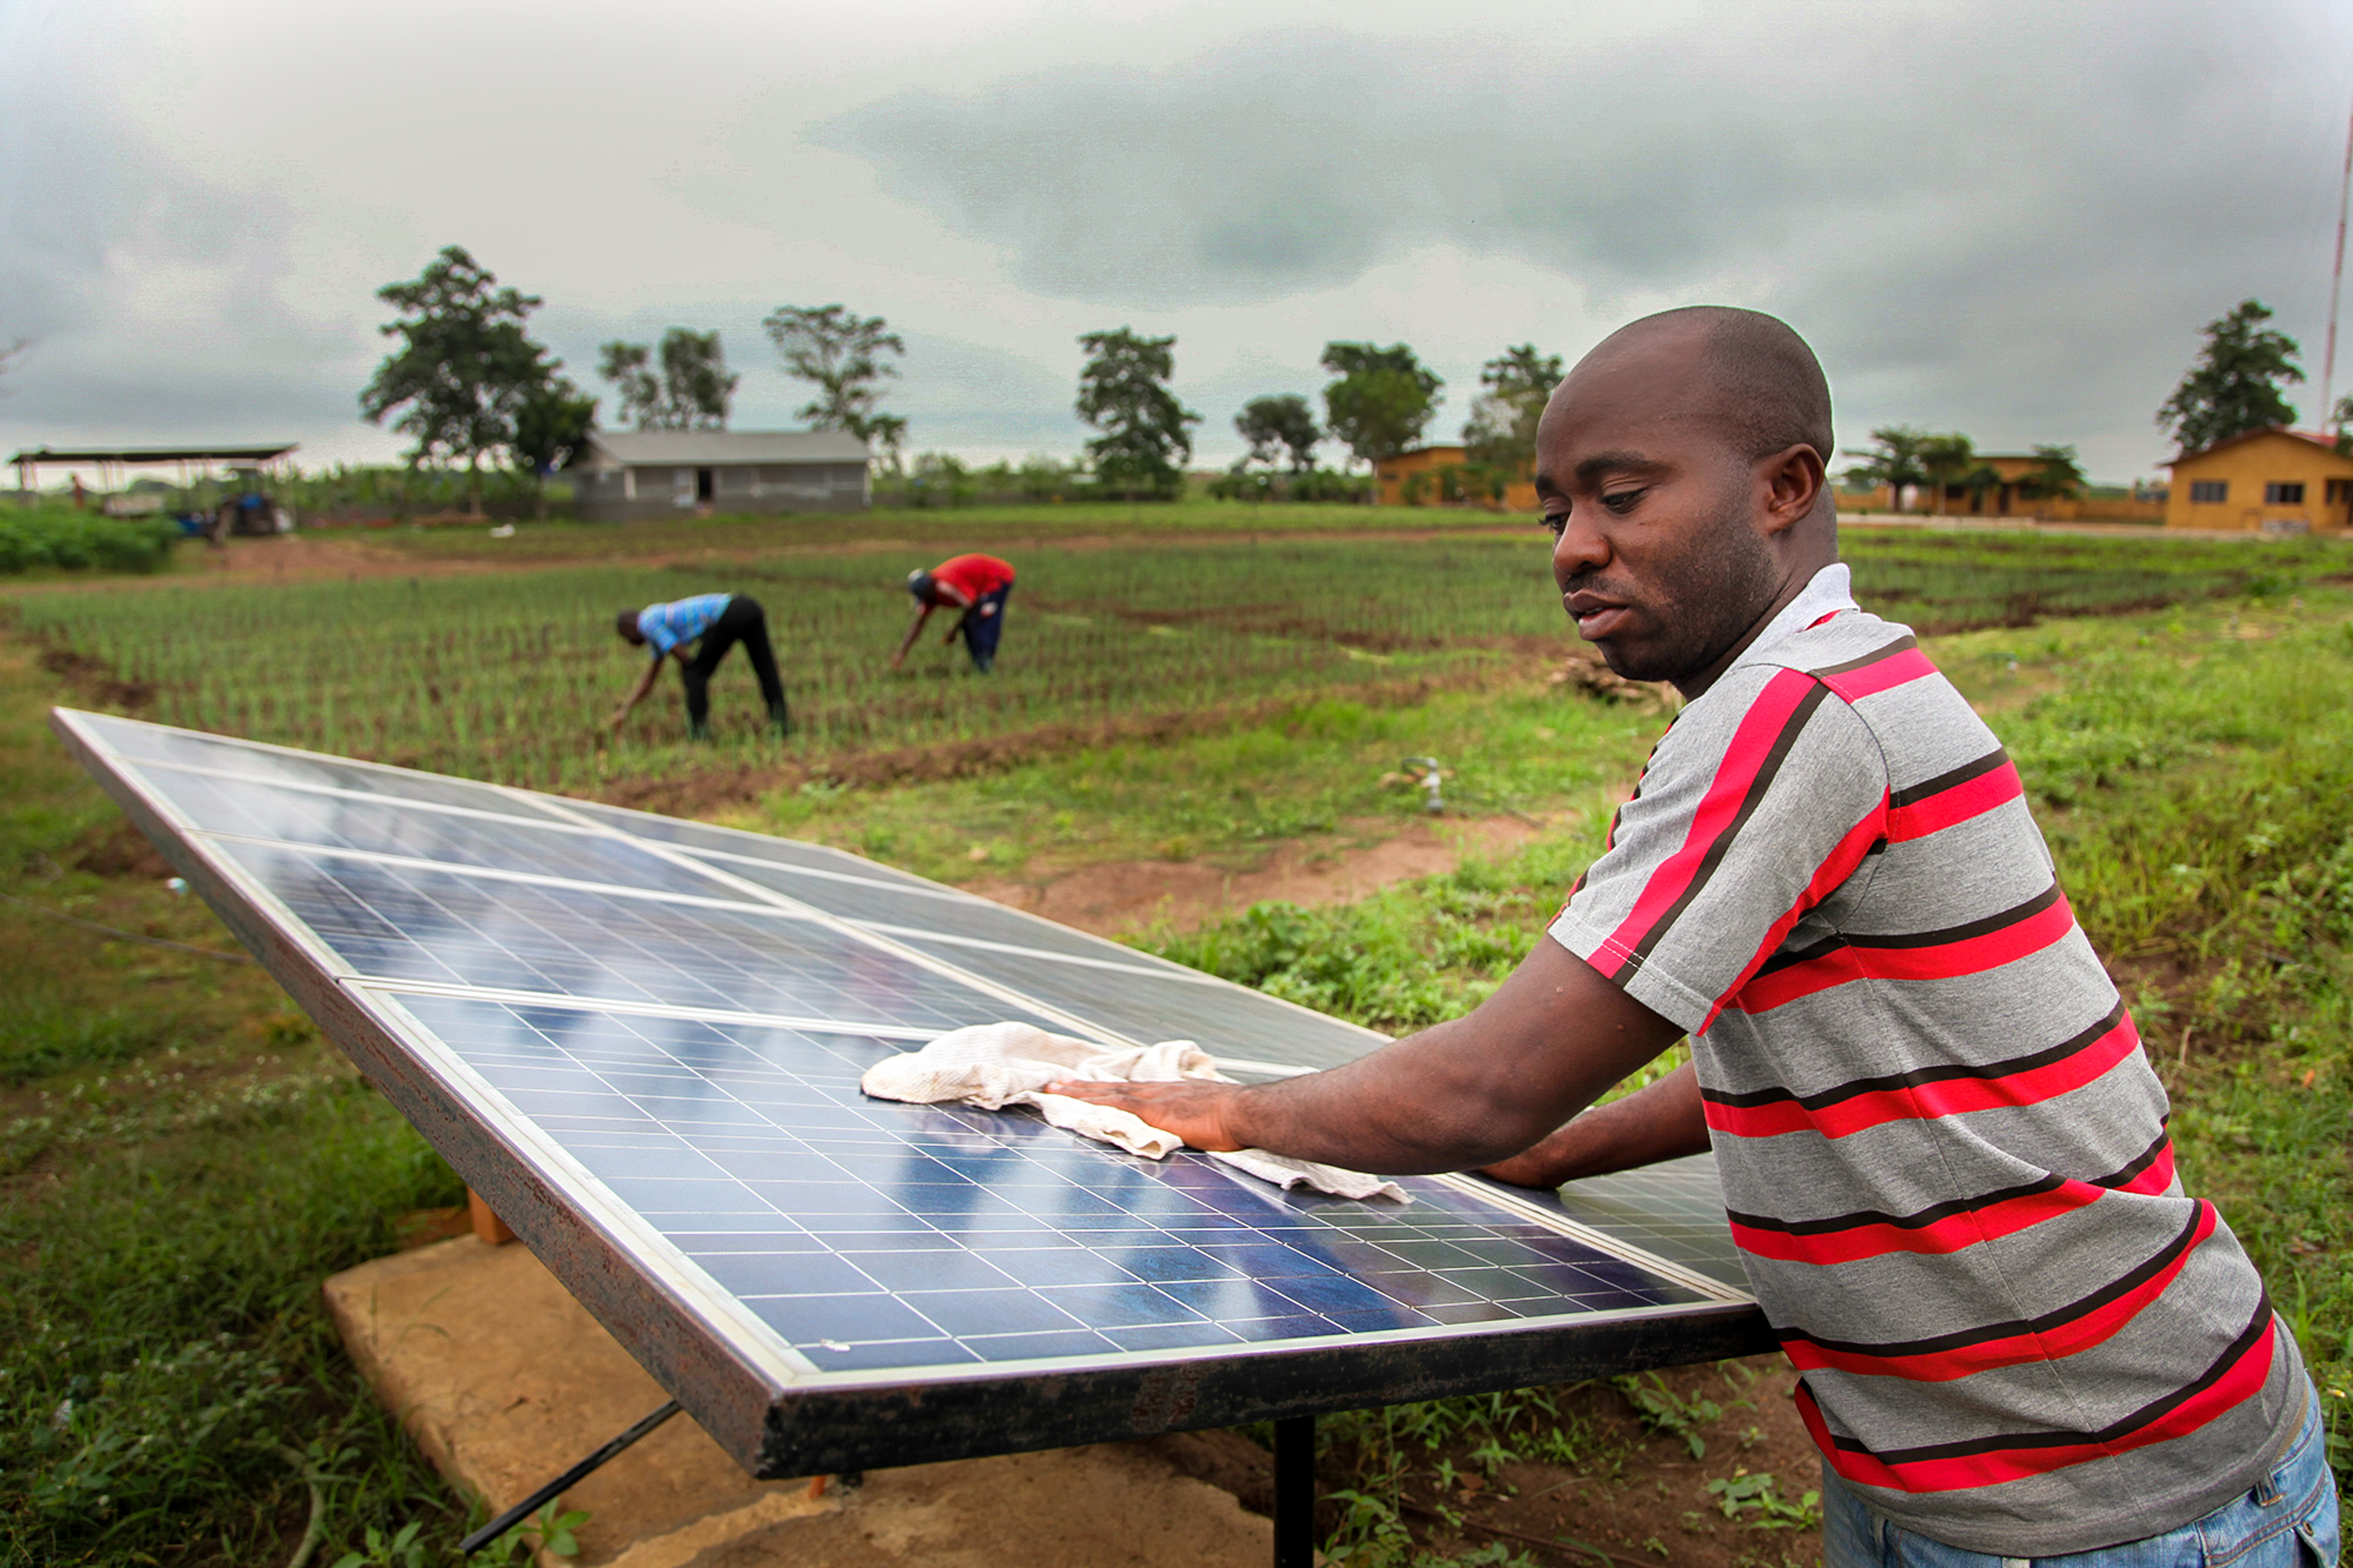 The energy revolution has arrived – here's how to be a part of it | United Nations Development Programme